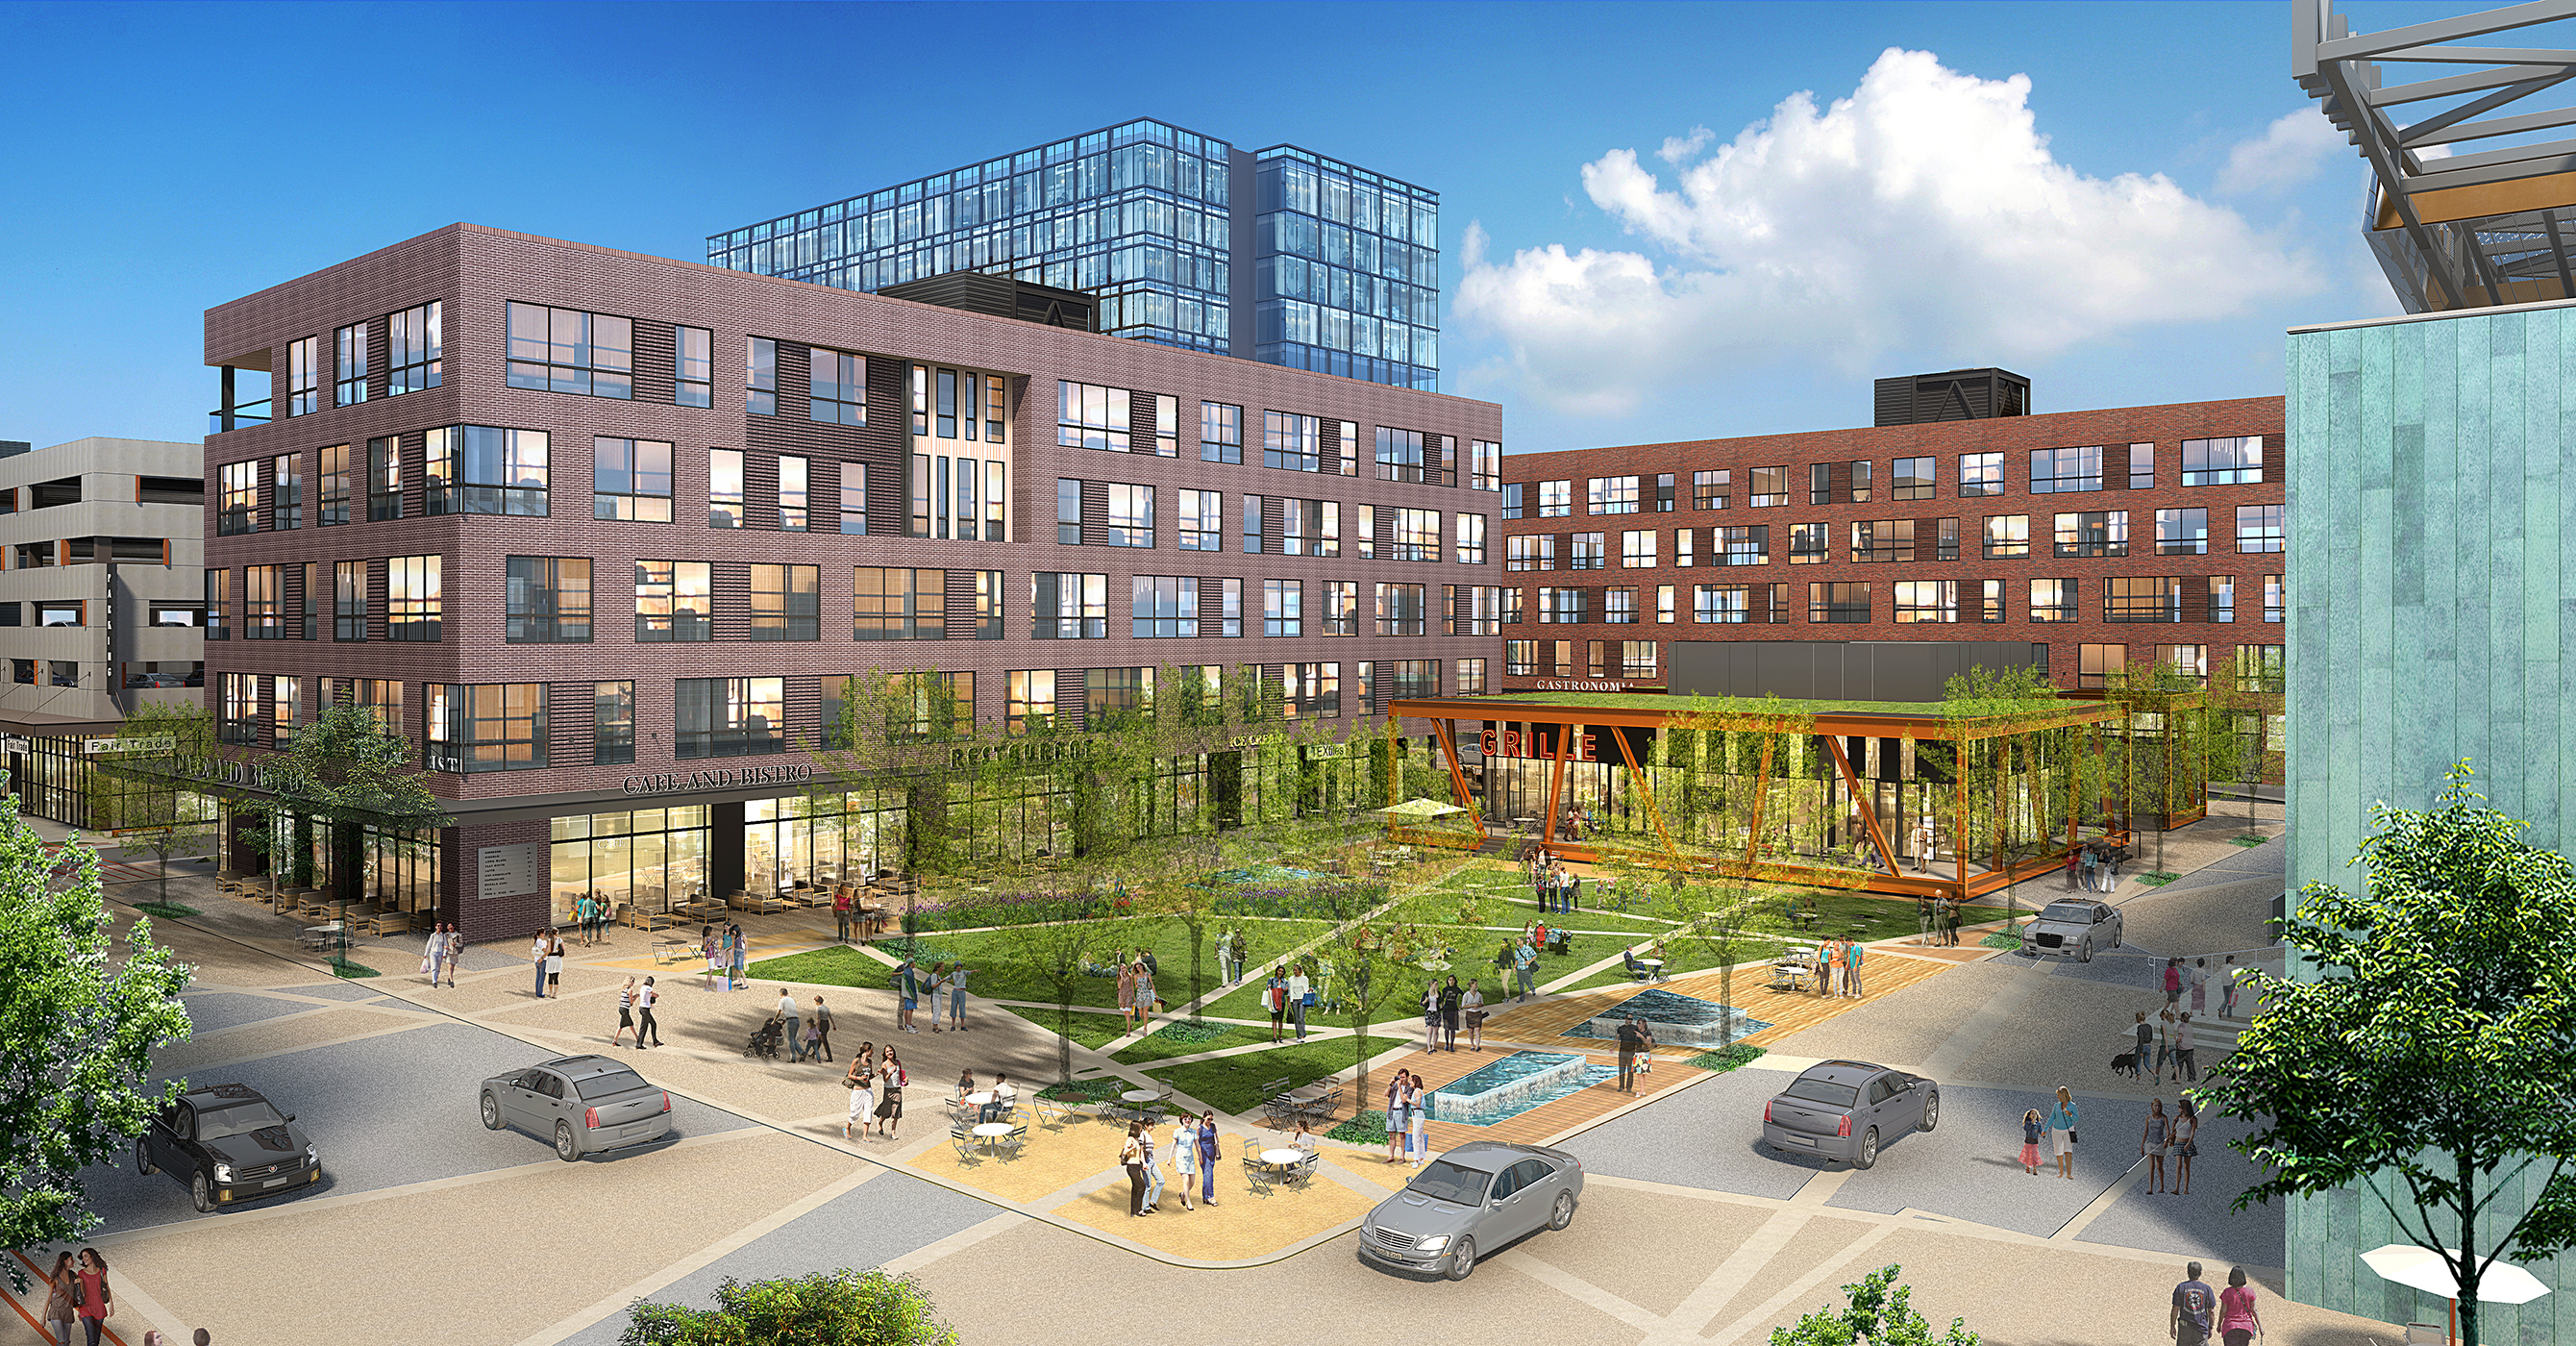 HOUSTON:  Plan to Gentrify East Houston Faces Early Opposition